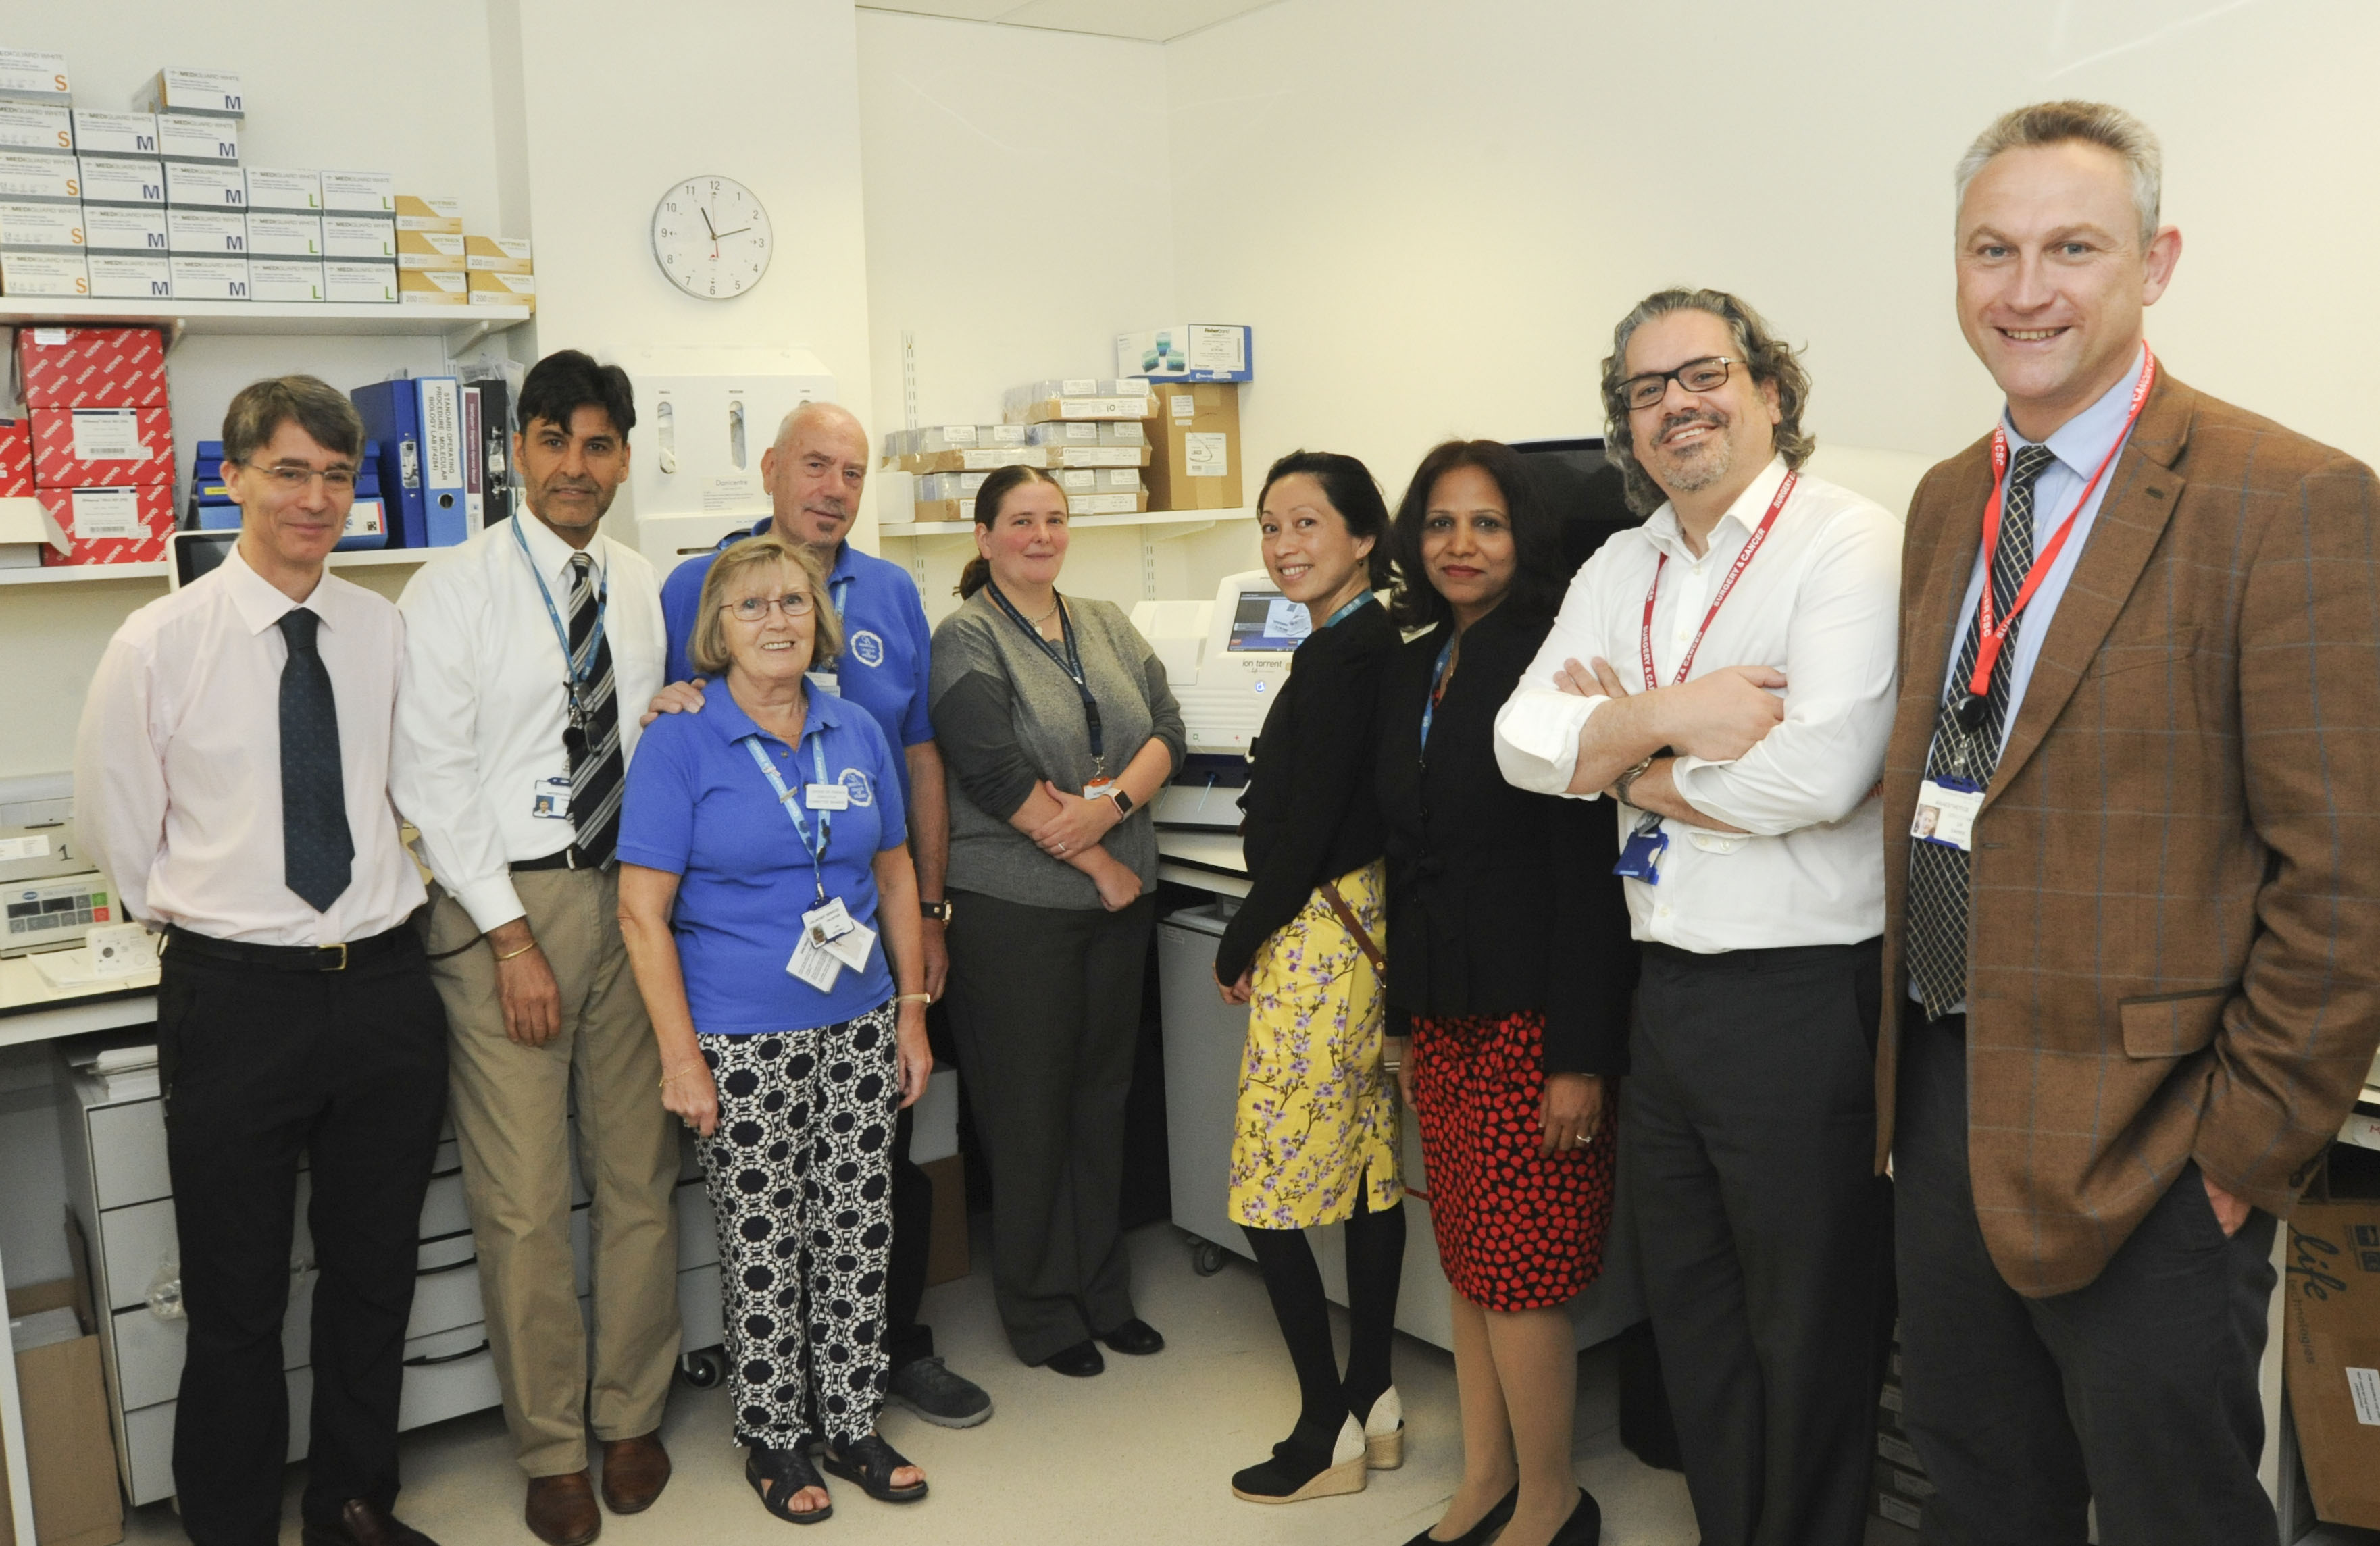 New machine to improve treatments for cancer patients' in Portsmouth.